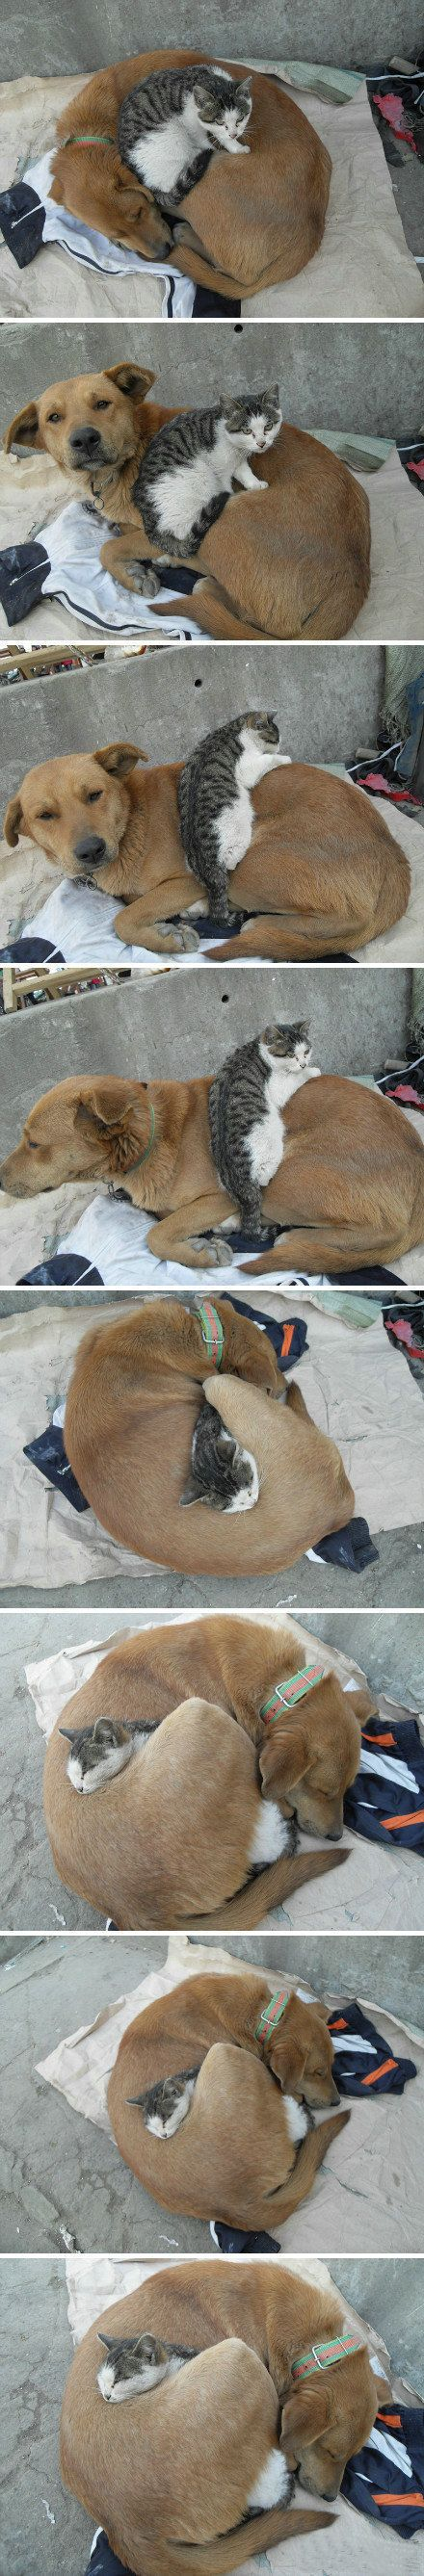 Such a sweet series of photos. (Now these two are FRIENDS!) - Now, around this house- it's the opposite- Dog + Cat= CHASE!